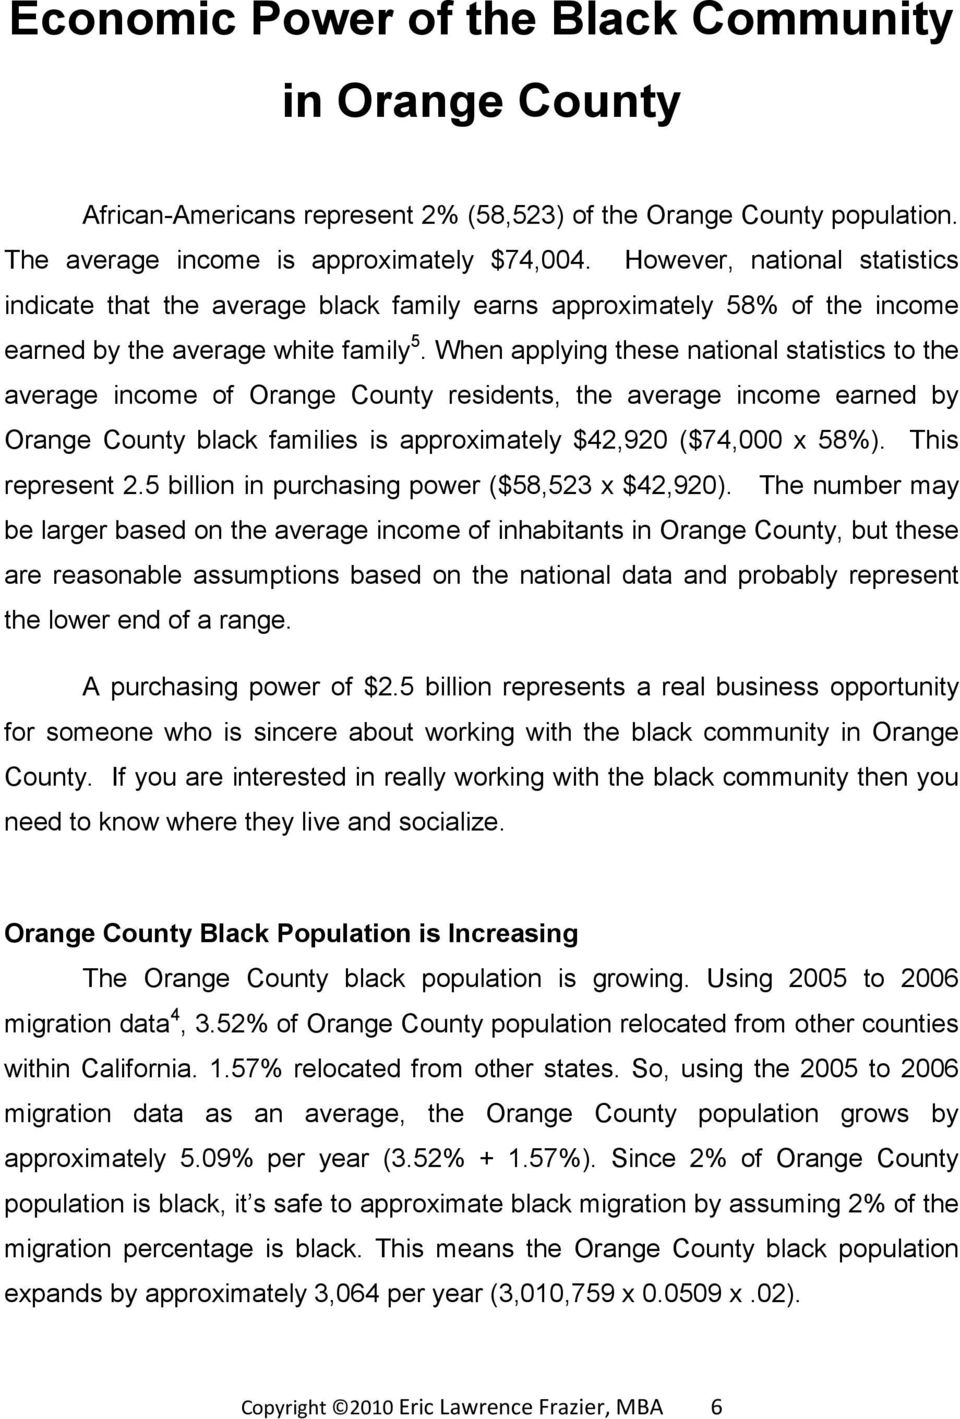 When applying these national statistics to the average income of Orange County residents, the average income earned by Orange County black families is approximately $42,920 ($74,000 x 58%).